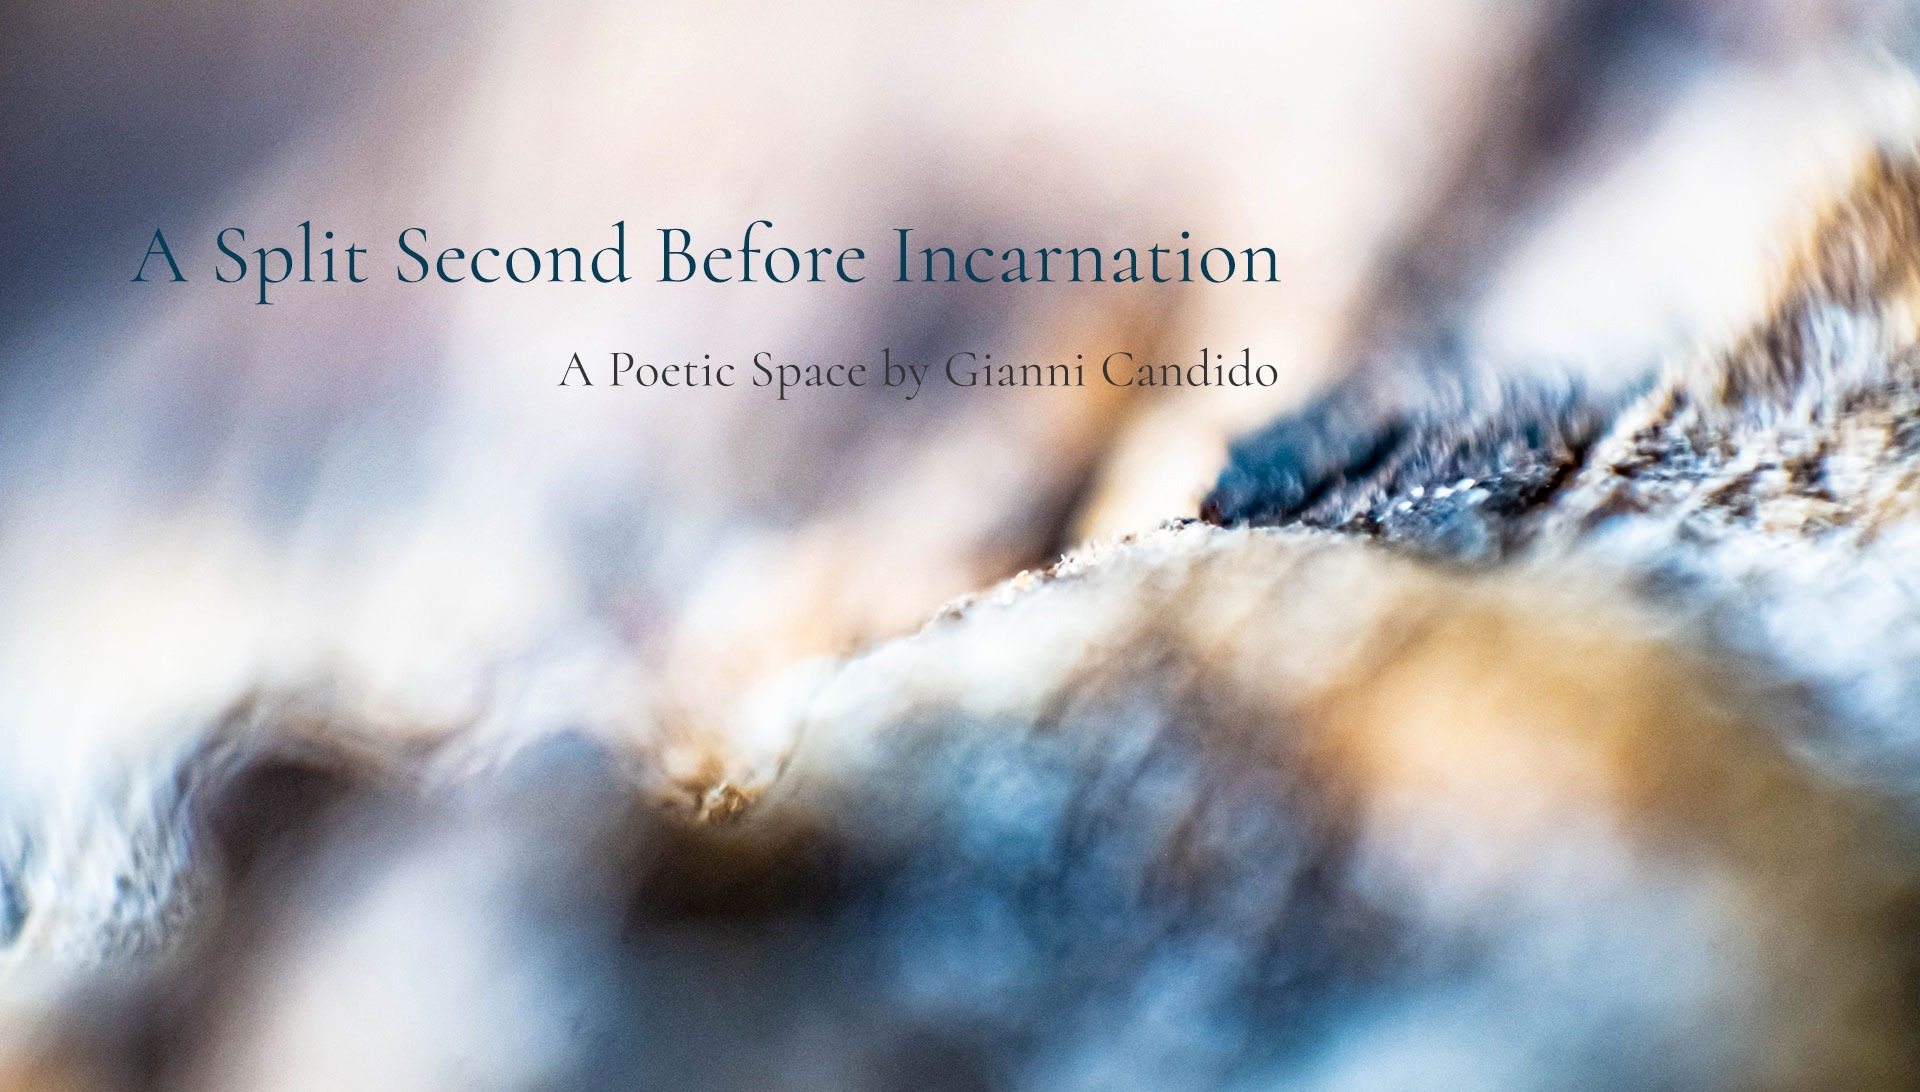 A split Second Before Incarnation- A Poetic Space by Gianni Candido